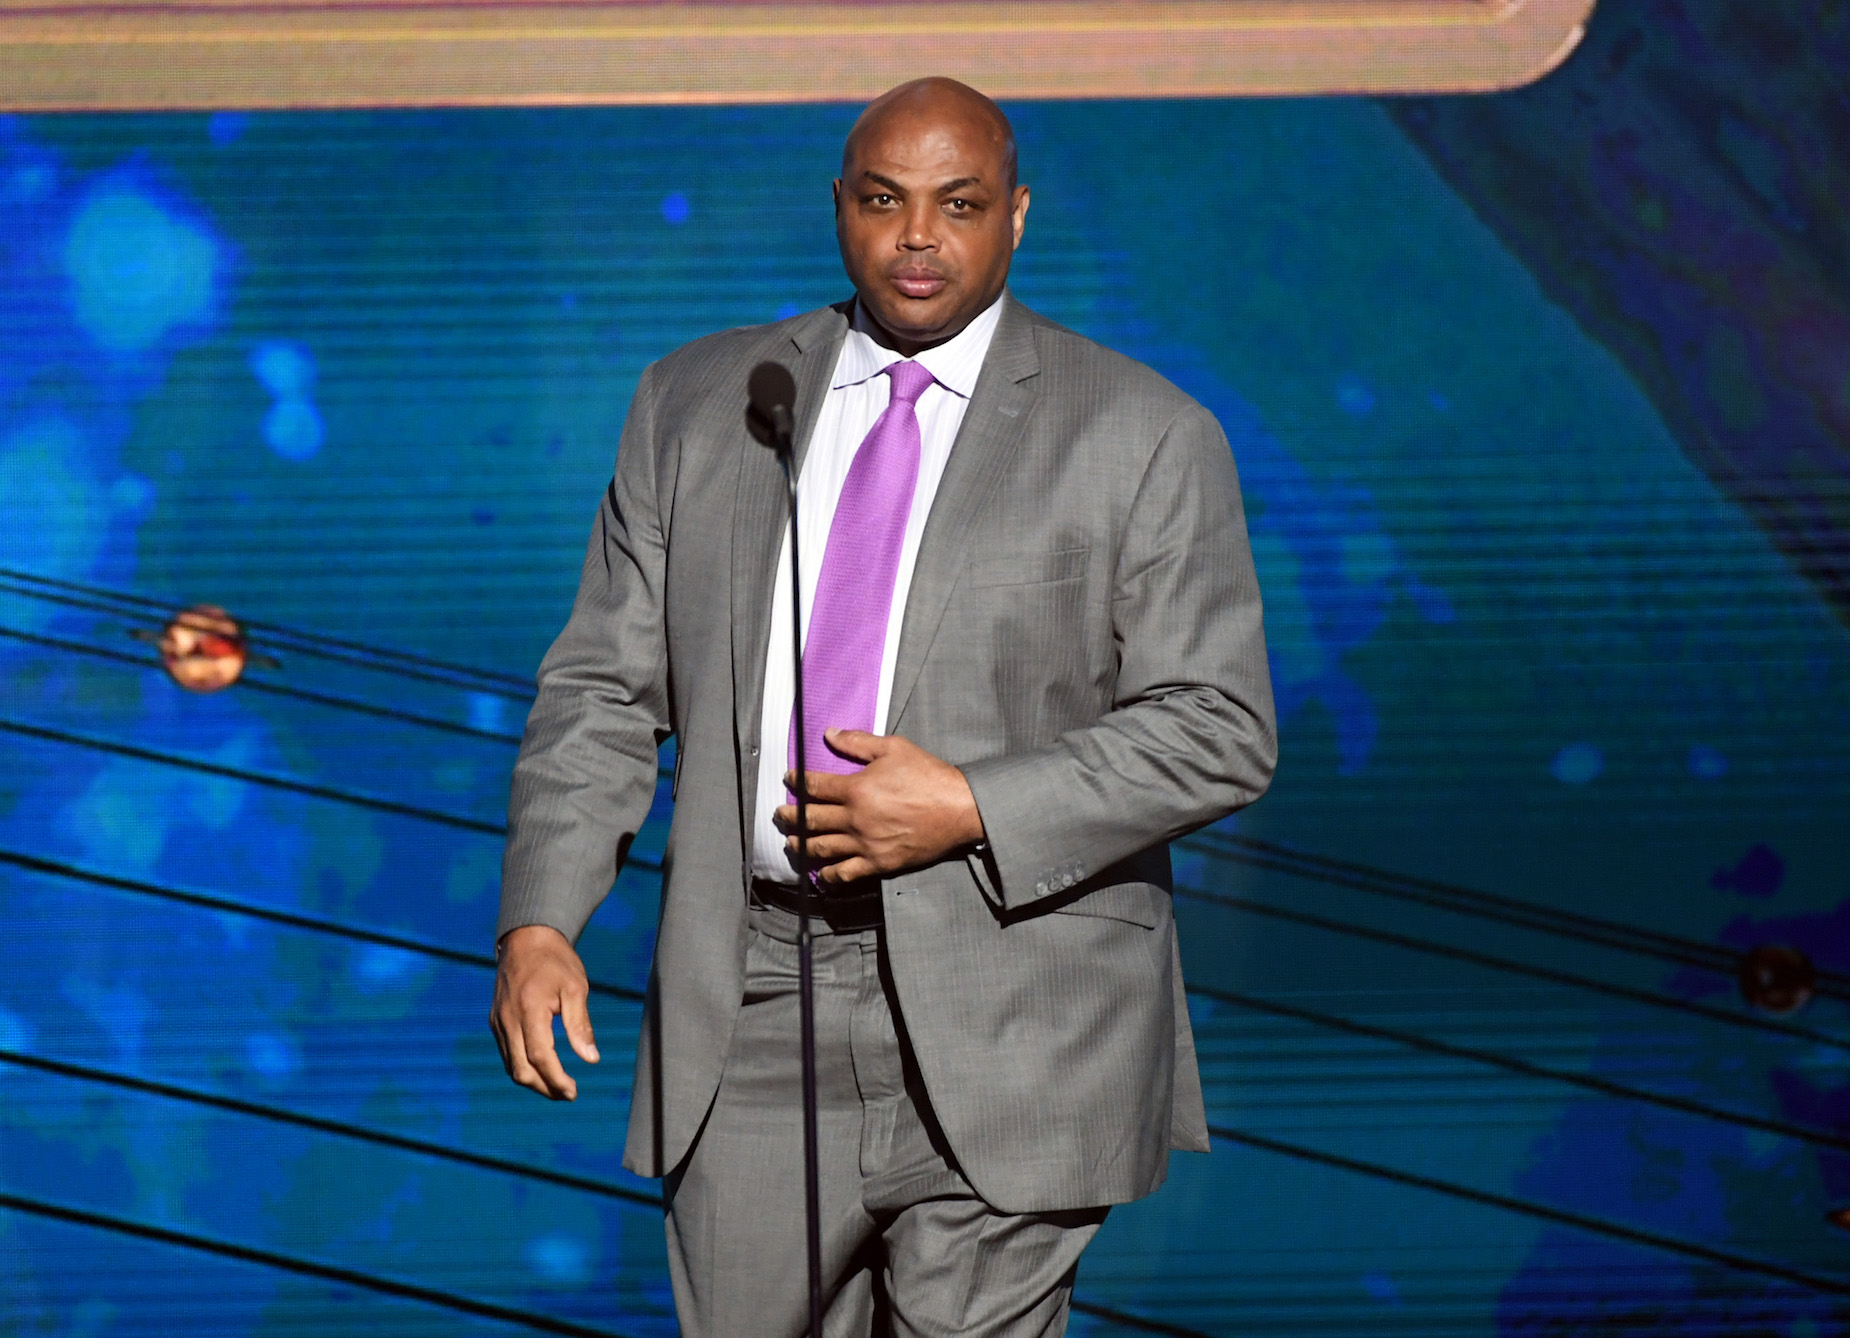 Charles Barkley once revealed that things can get pretty boring while filming TNT's Inside the NBA.